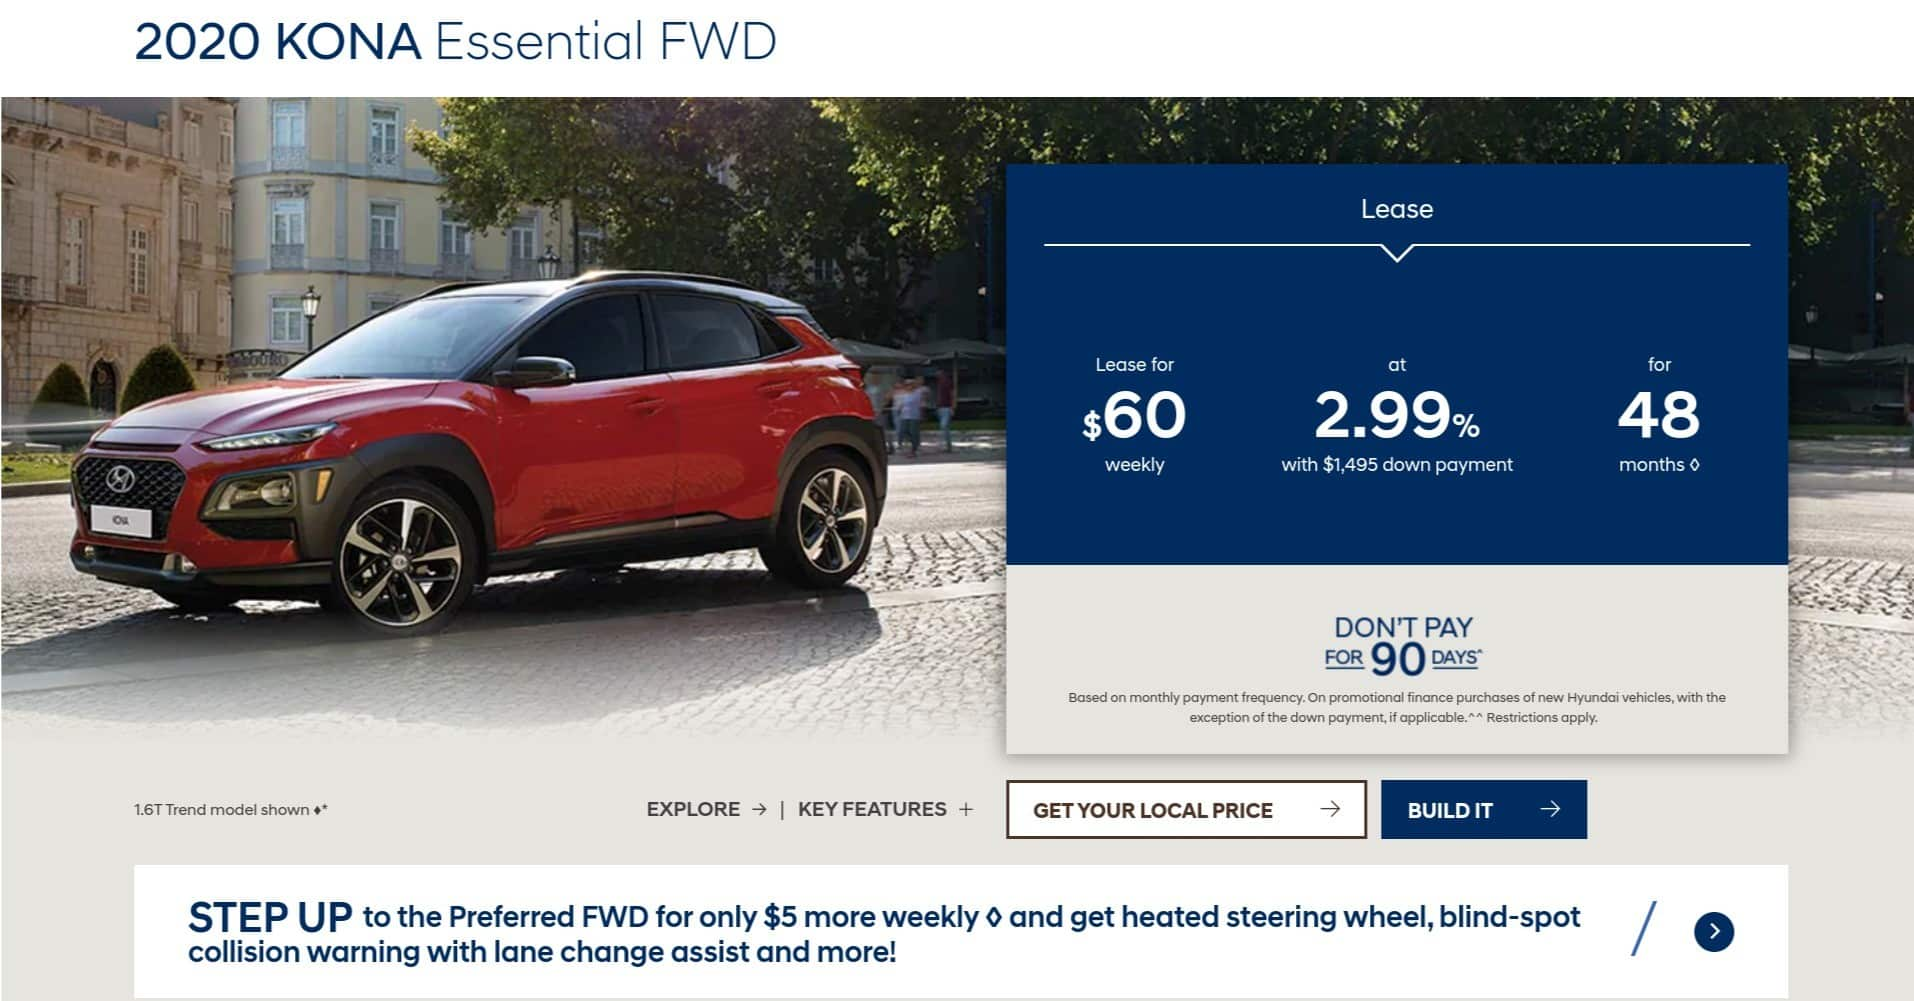 2020 Hyundai Kona is one of the best new car deals in Canada